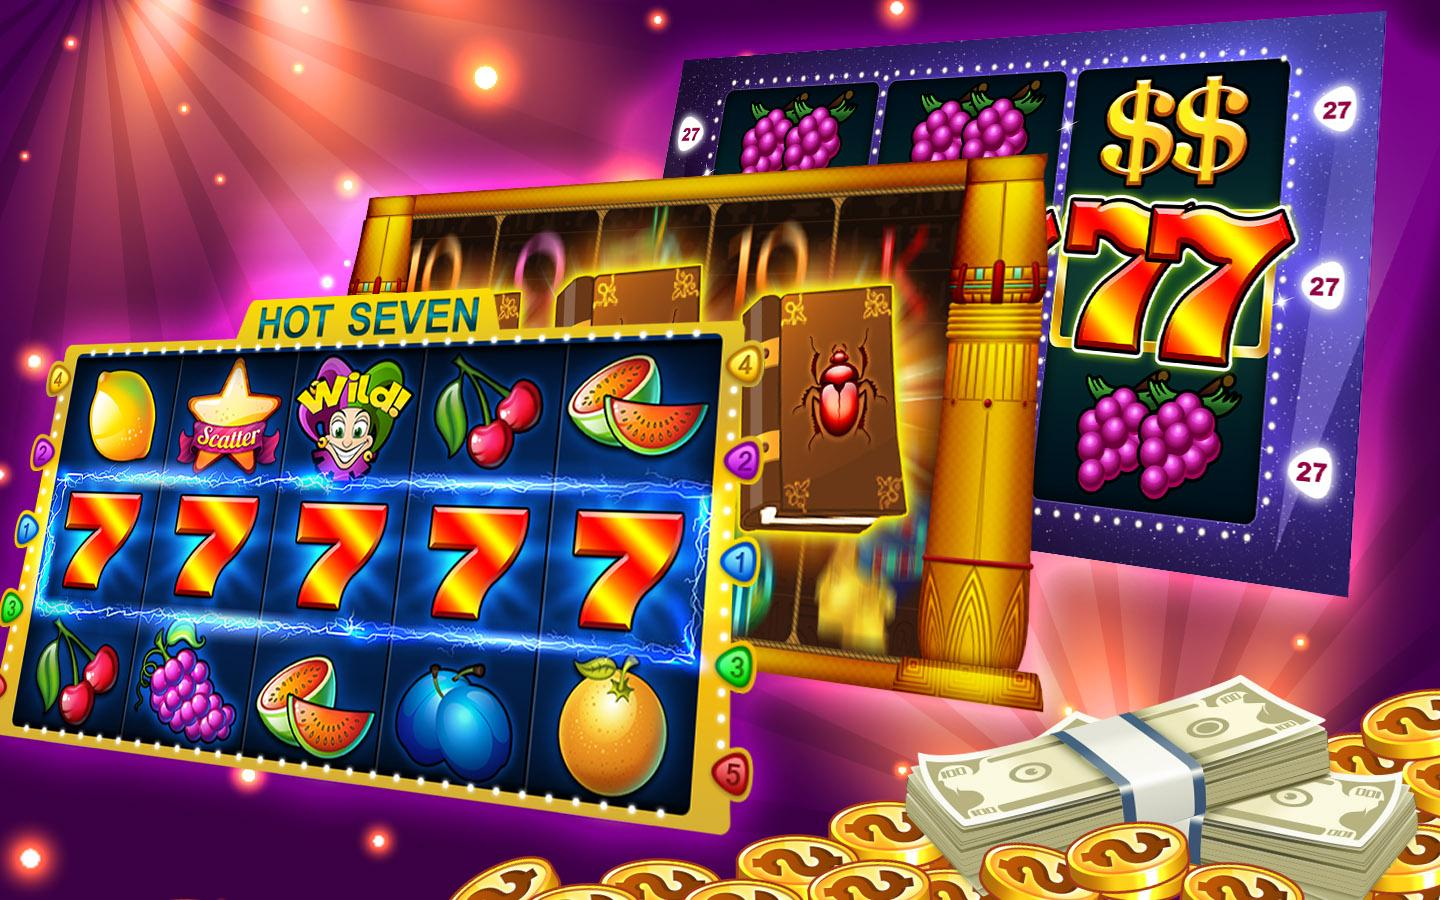 Caramelo Slot Machine - Try it Online for Free or Real Money